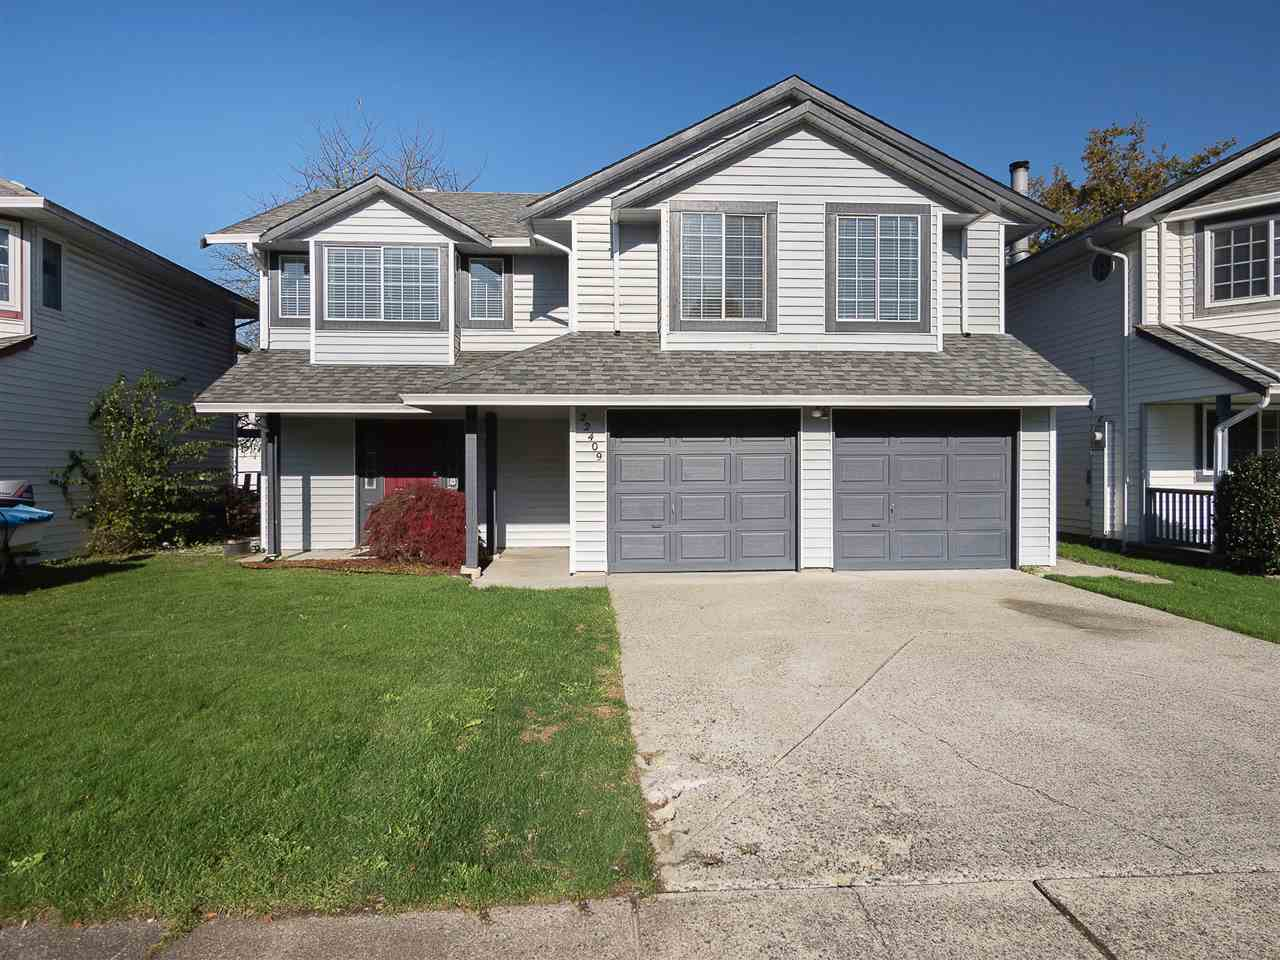 Removed: 22409 Morse Crescent, Maple Ridge, BC - Removed on 2019-02-26 04:12:16